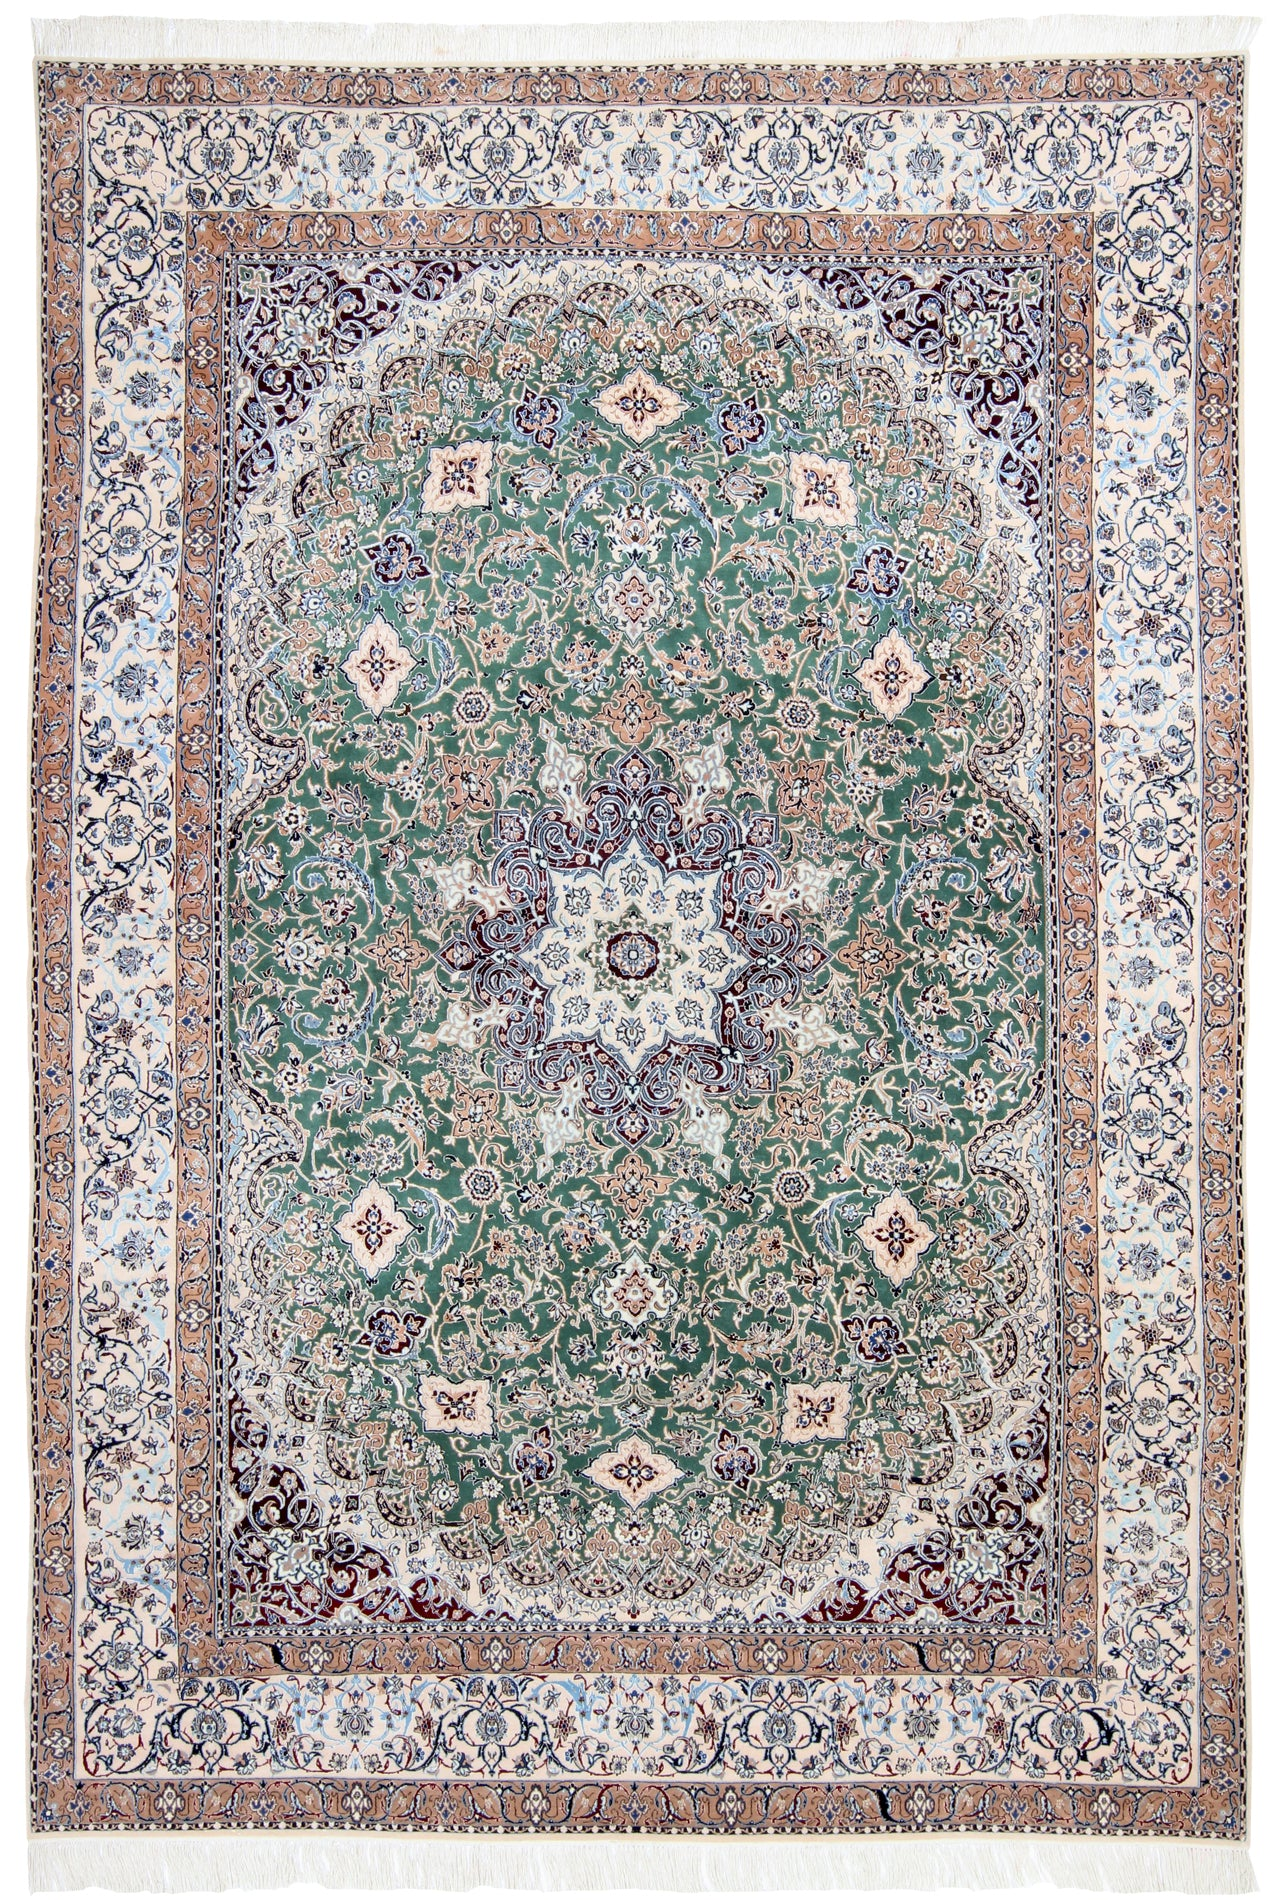 Nain Teal-Green Field-Turco Persian Rug Company Inc.